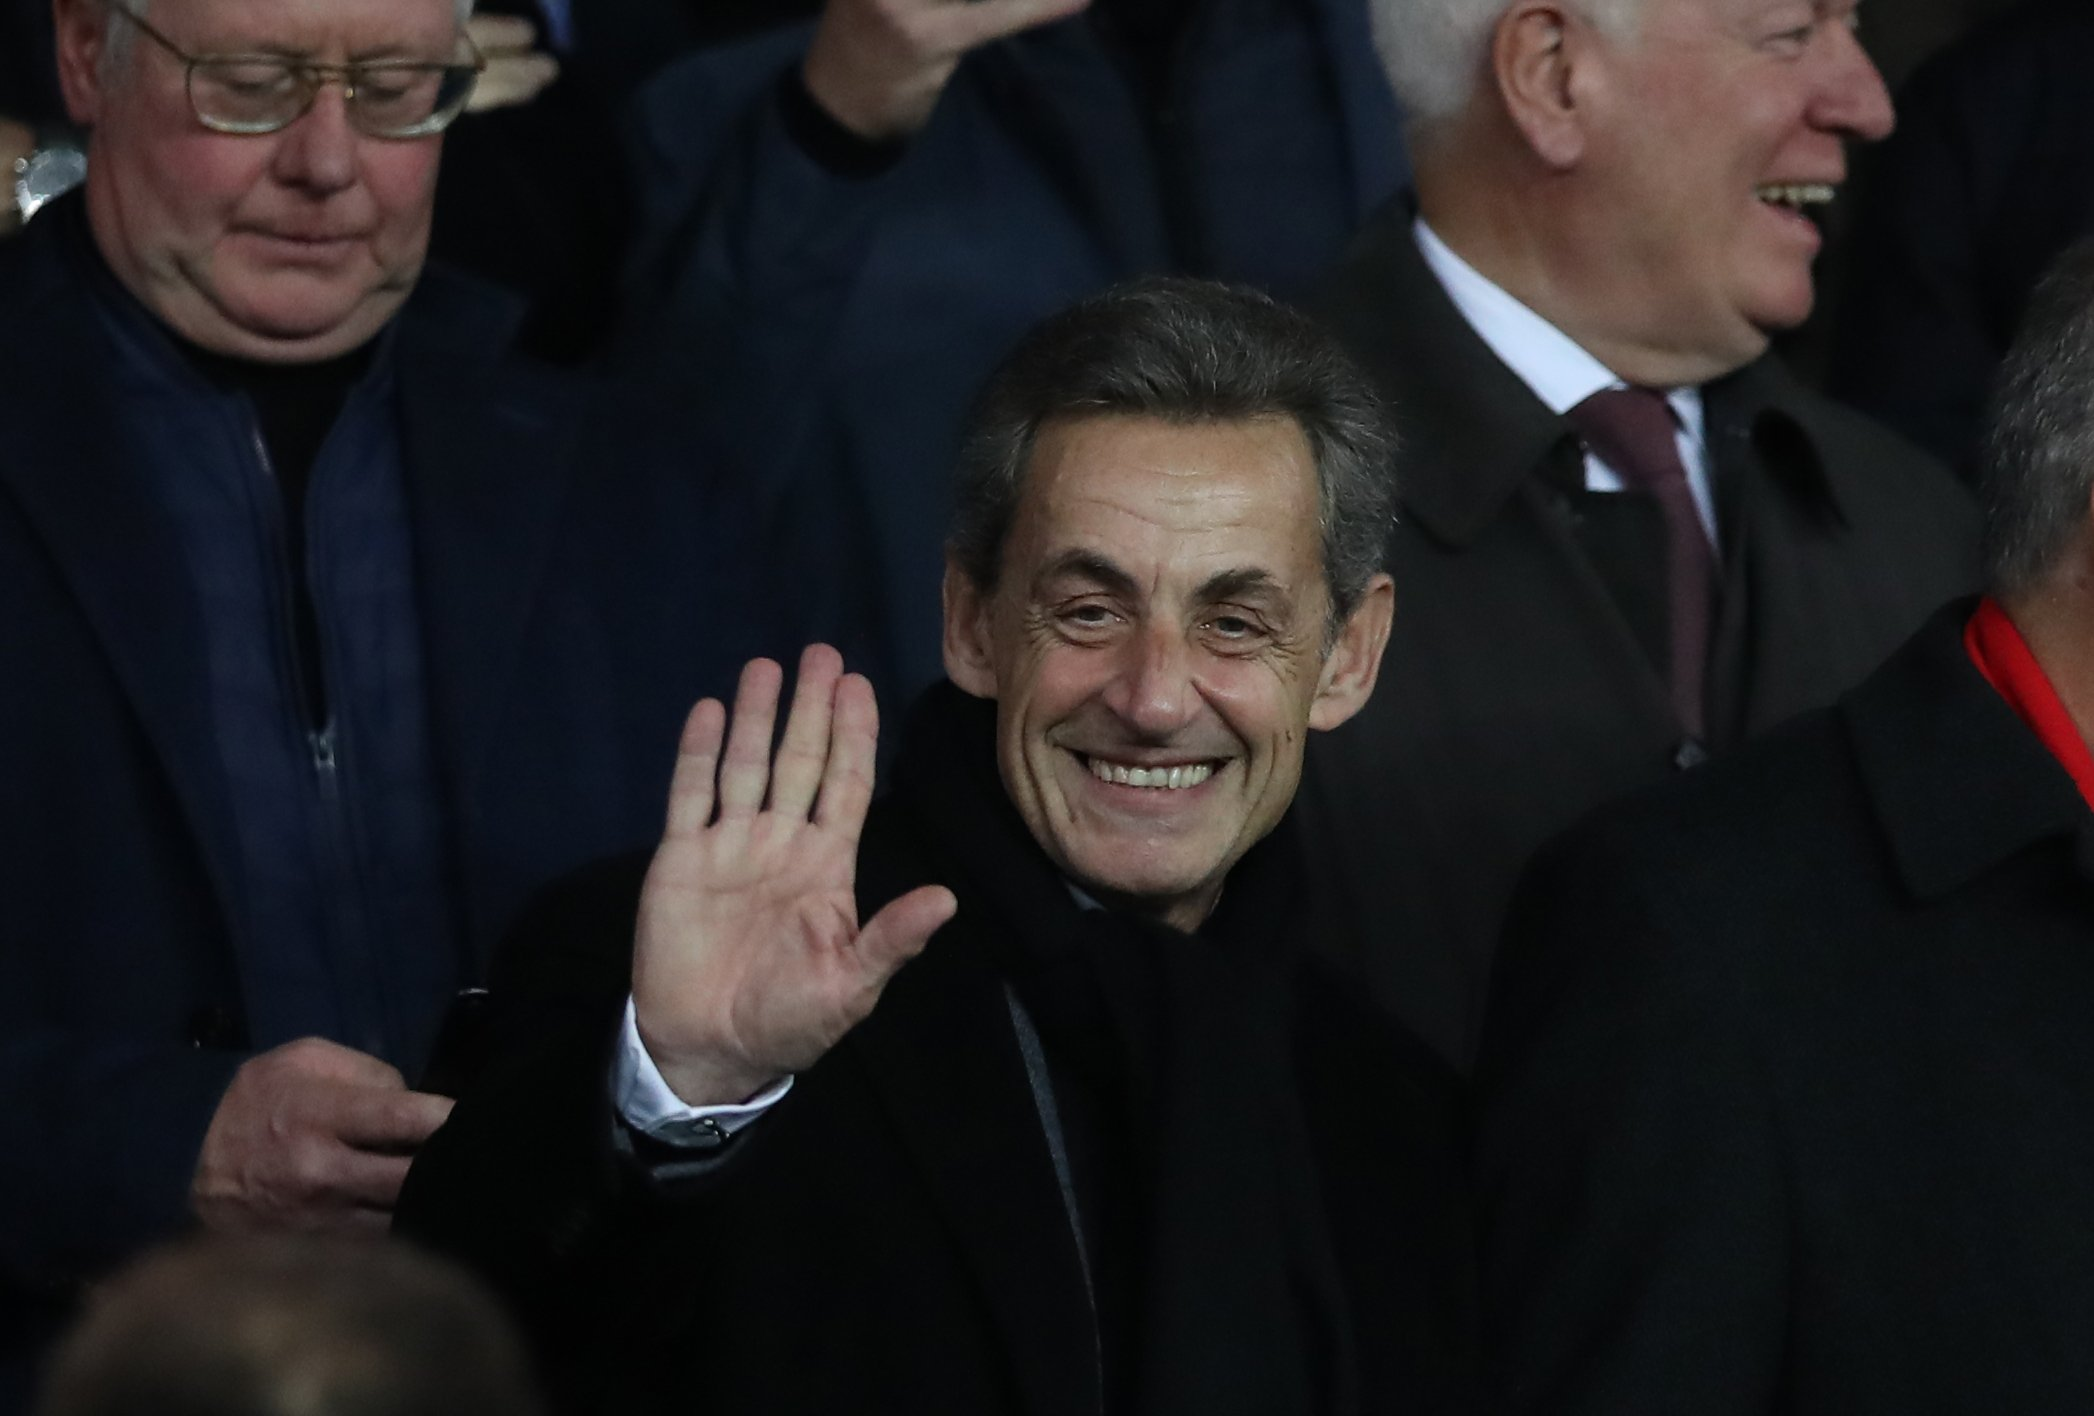 L'ancien président français Nicolas Sarkozy au match du Groupe C de la Ligue des champions de l'UEFA à Paris, France | Photo : Getty Images